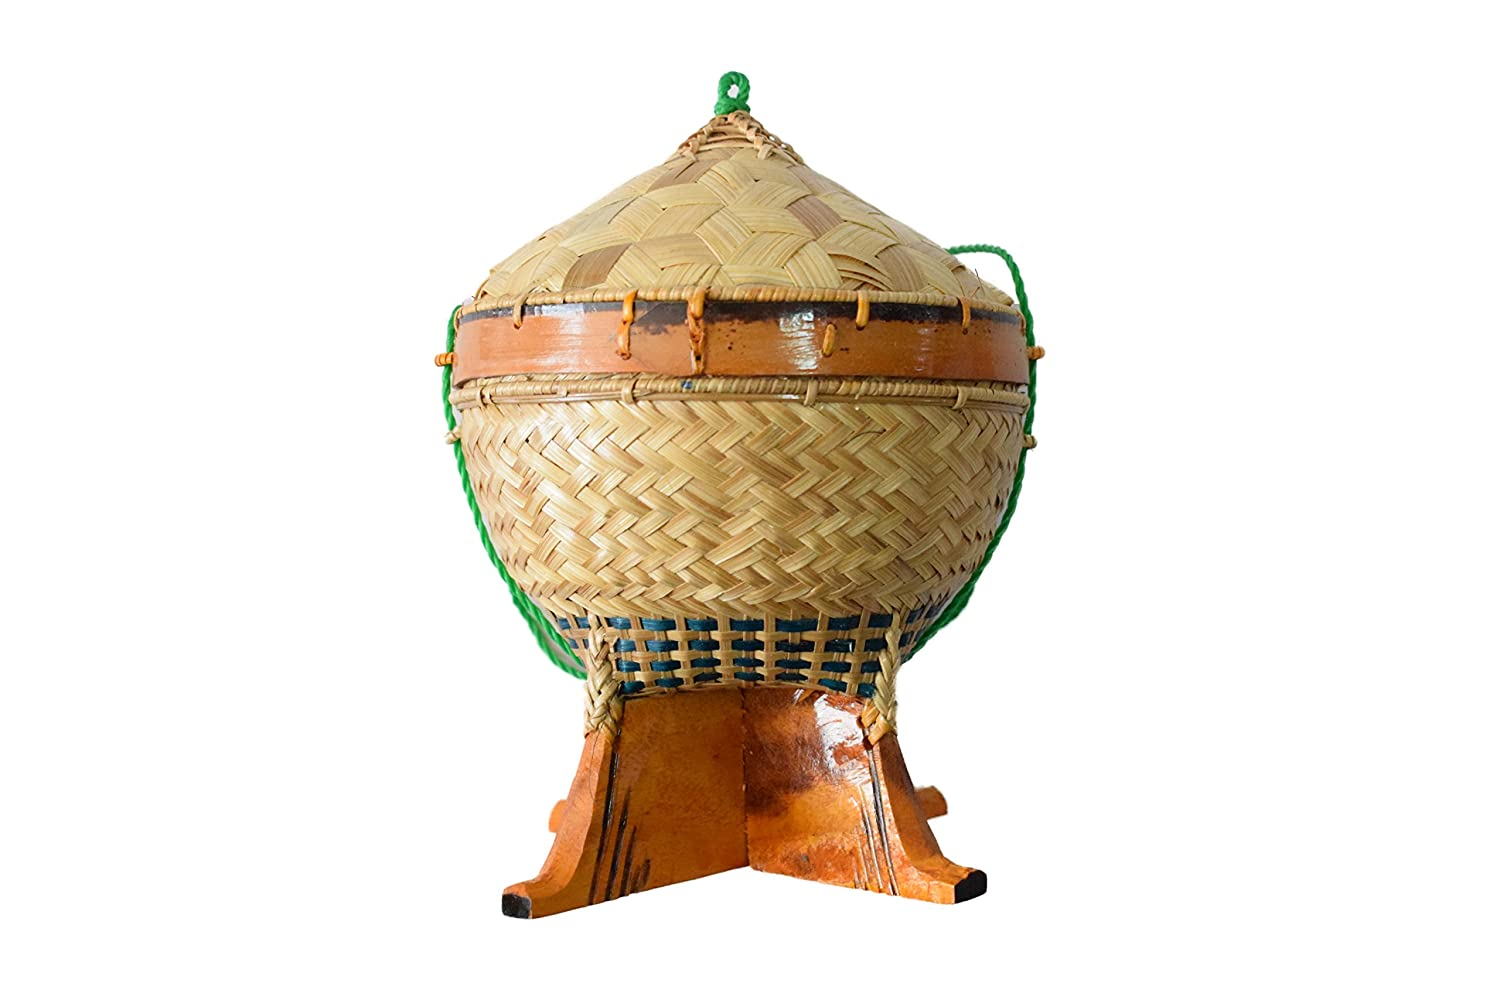 Morafamily Thai-Loas Wicker Sticky rice Bamboo Container Storage Classic Natural Traditional Thailand